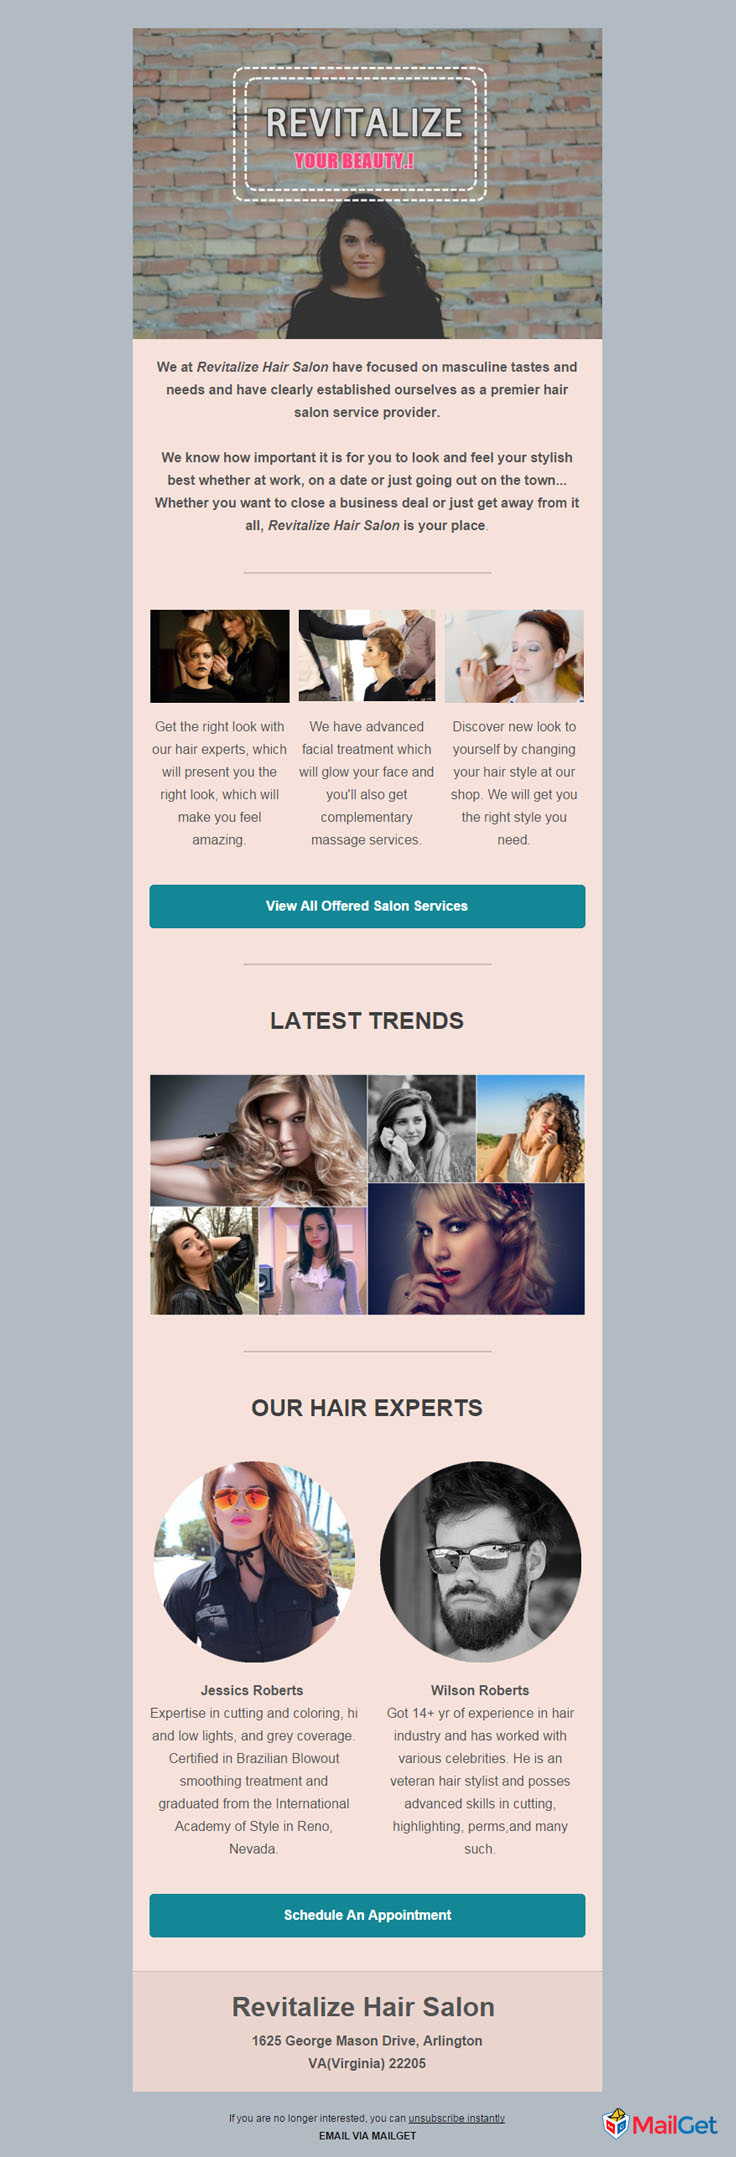 Free Hair Salon Email Templates